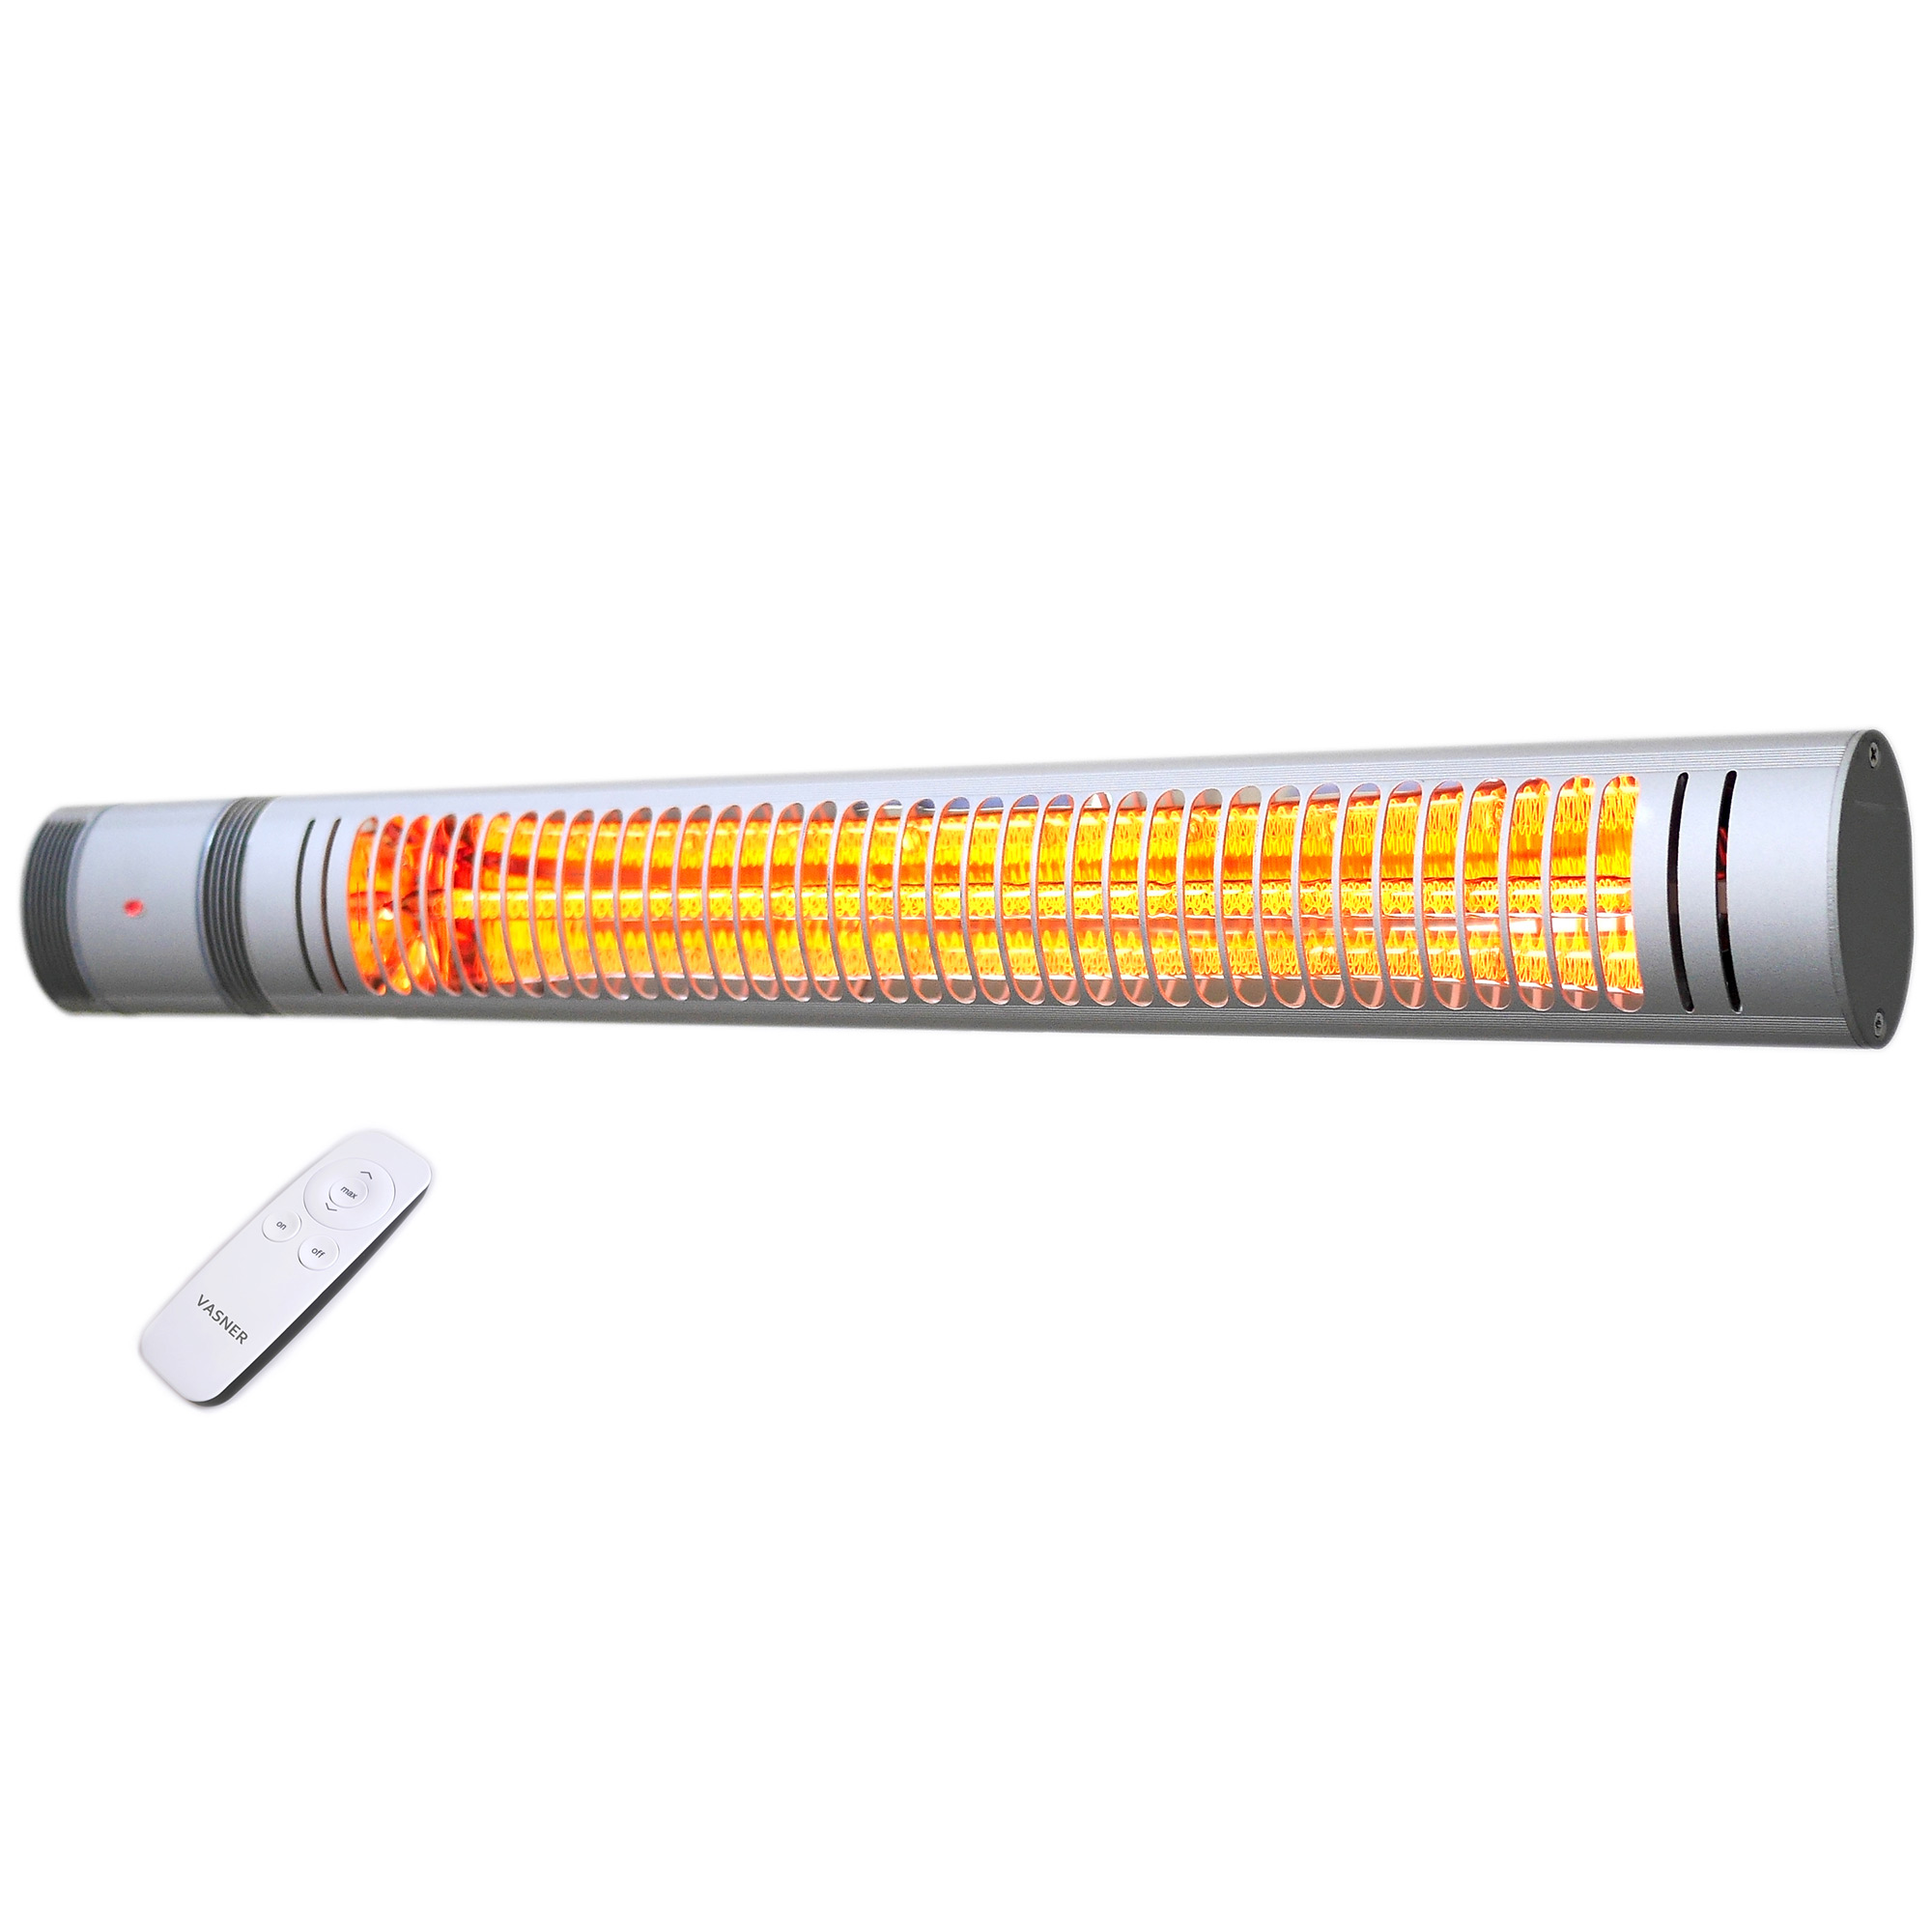 Electric-patio-heater-sleek-design